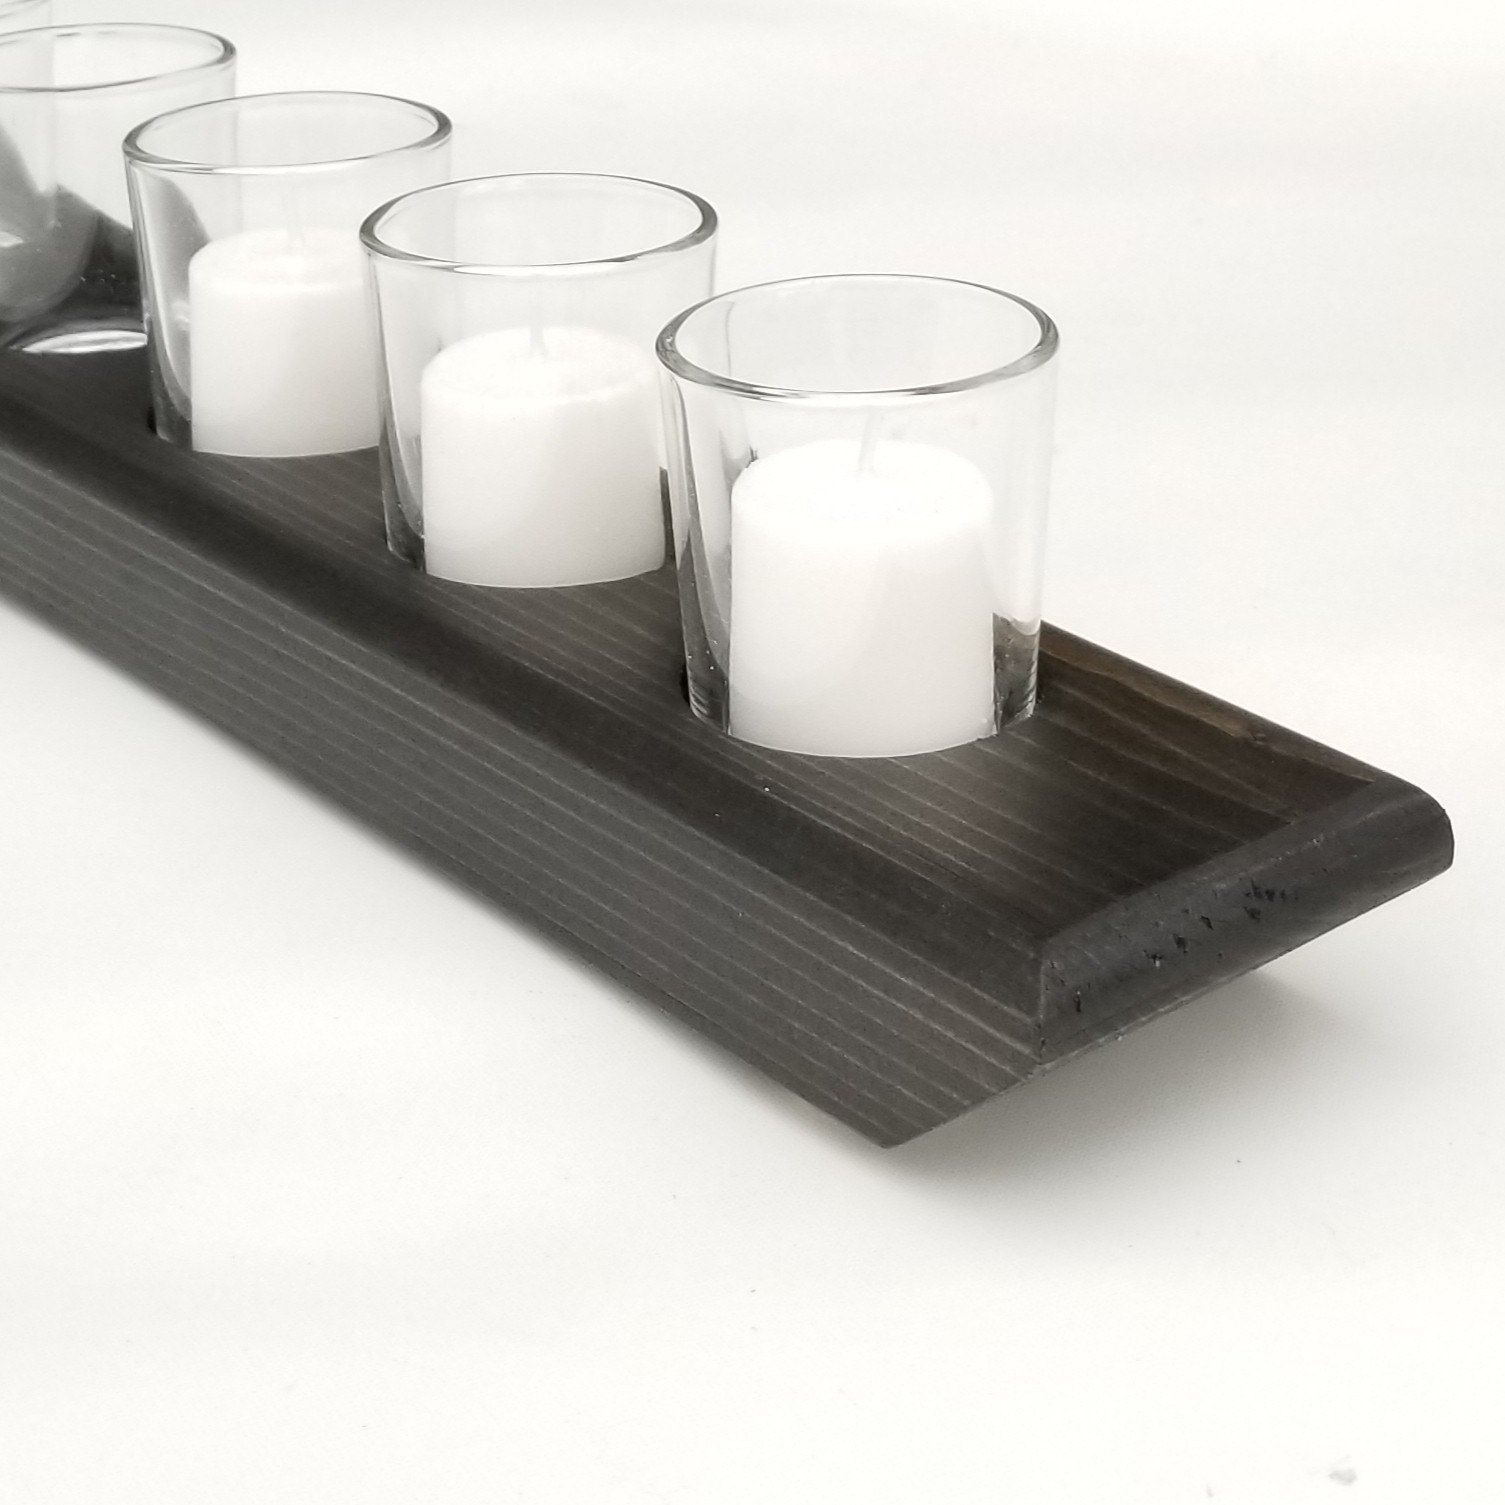 Candle holder centerpiece wood candle tray table